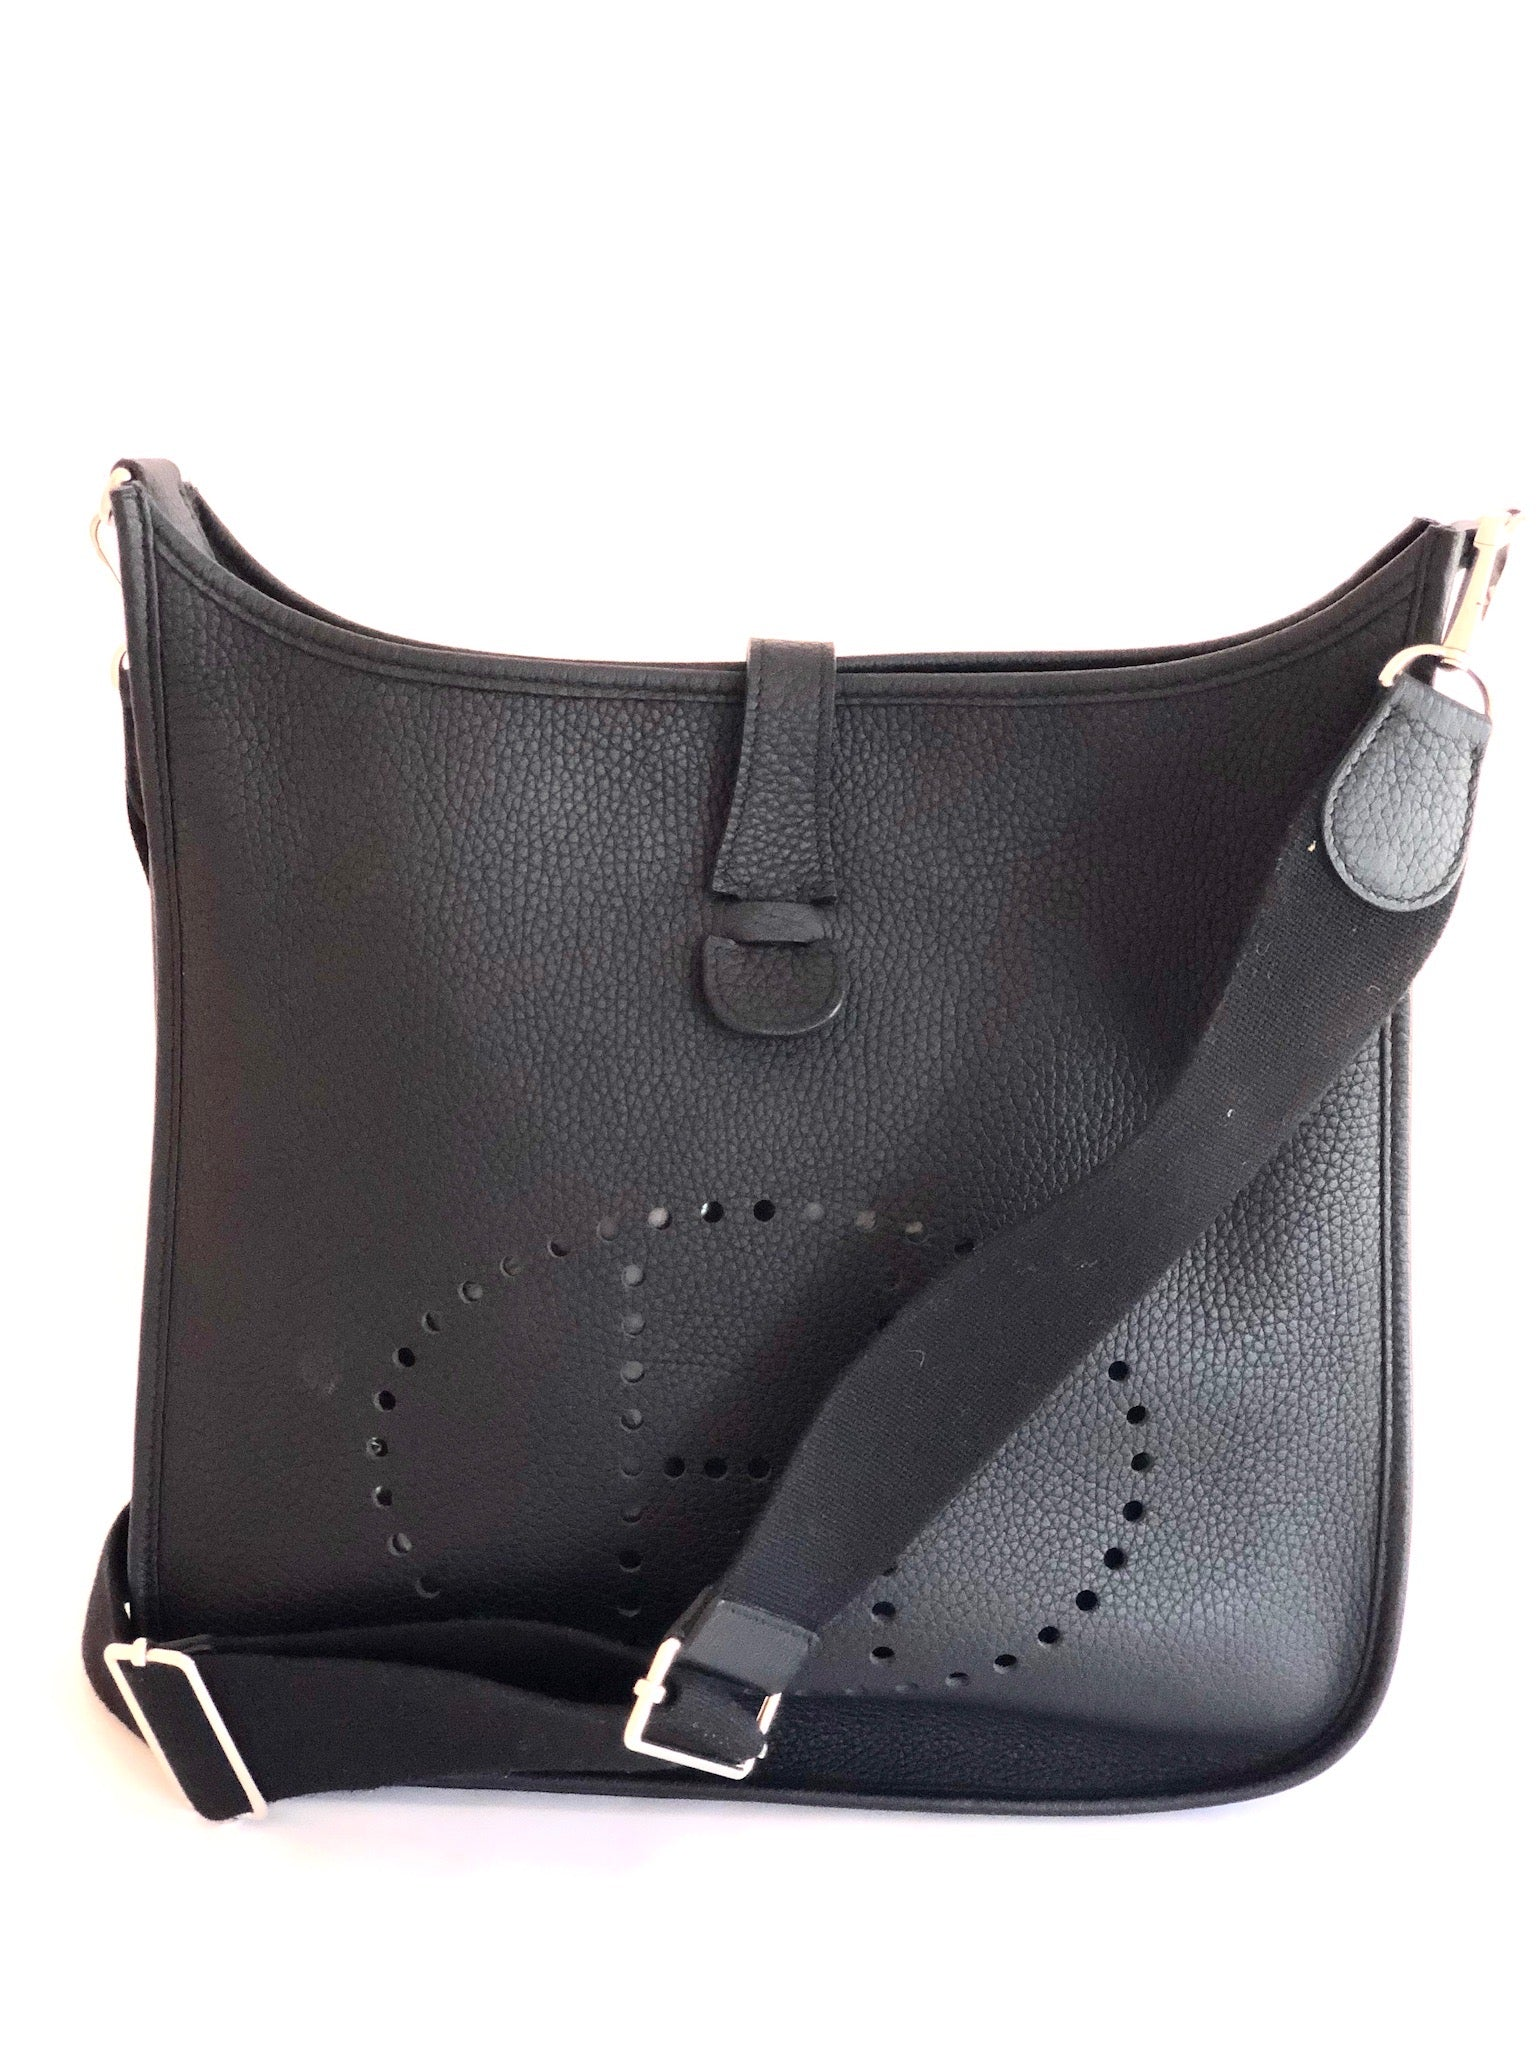 Hermes Evelyne III GM Black Leather Shoulder Bag R Stamp